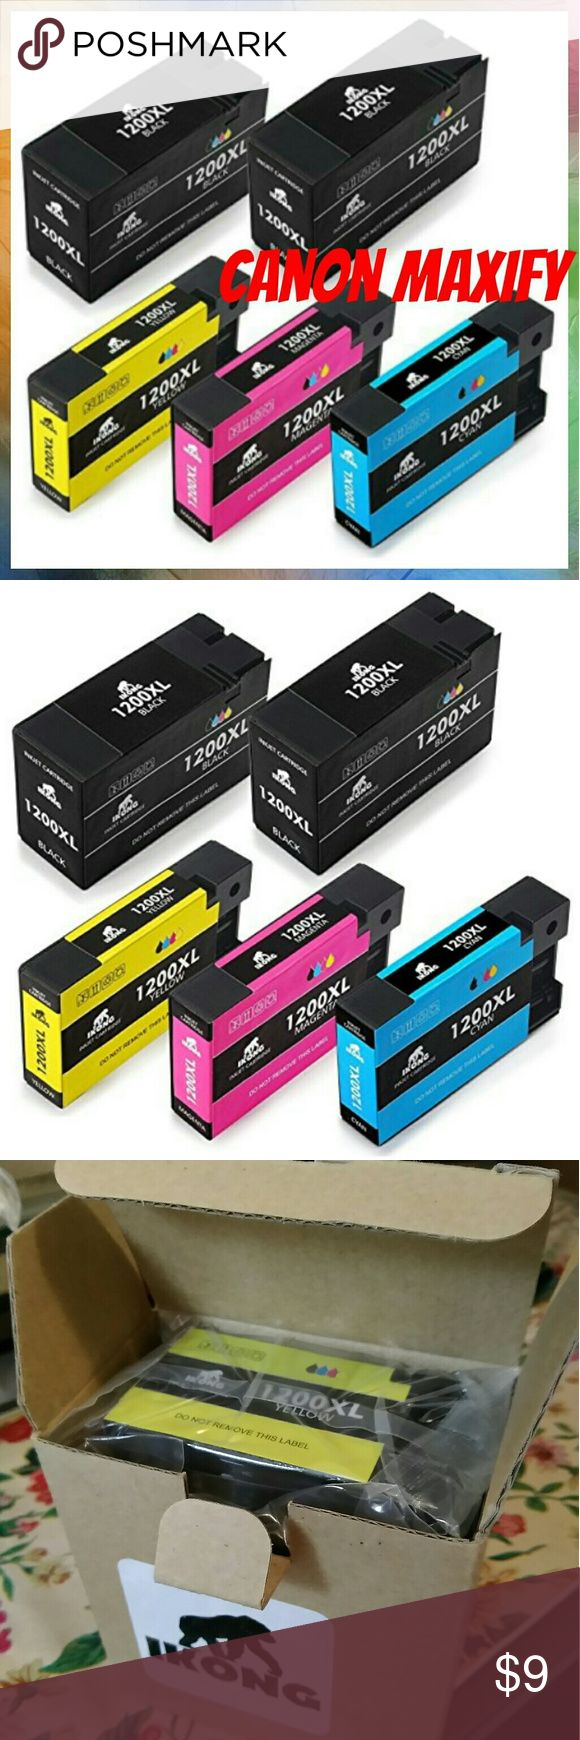 """5x Canon Maxify Printer Ink What is included: Canon PGI-1200XL Compatible Ink Cartridge Replacement (2 Black, 1 Cyan, 1 Magenta, 1 Yellow, Total 5-pack)  Printer Compatibility:Canon Maxify MB2020 MB2320 MB2050 MB2350 MB2120 MB2720 Inkjet Printers  High Capacity:""""XL"""" High Yield ink cartridges enjoy your $AVING$ as well as the times to replace new cartridges.  *Bundle for 15% OFF!* Other"""